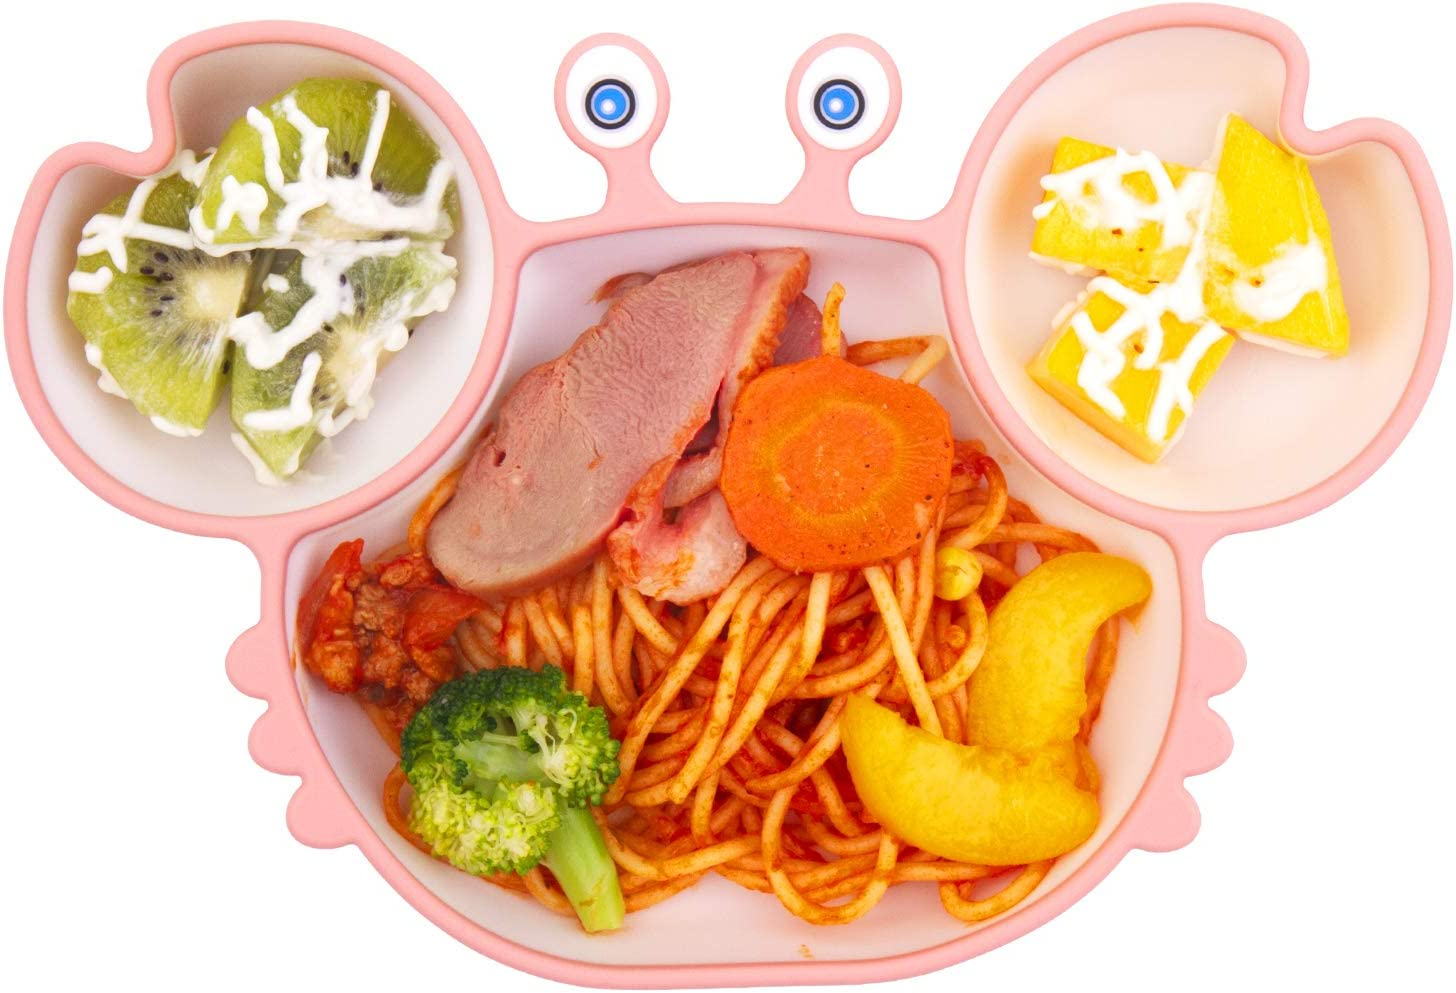 Blue Qshare Baby Suction Plate,Toddler Infant Silicone Non Slip Divided Placemat with Strong Suction Cup Fit Most High Chair BPA-Free Dishwasher /& Microwave Safe Kids Travel Feeding Tray